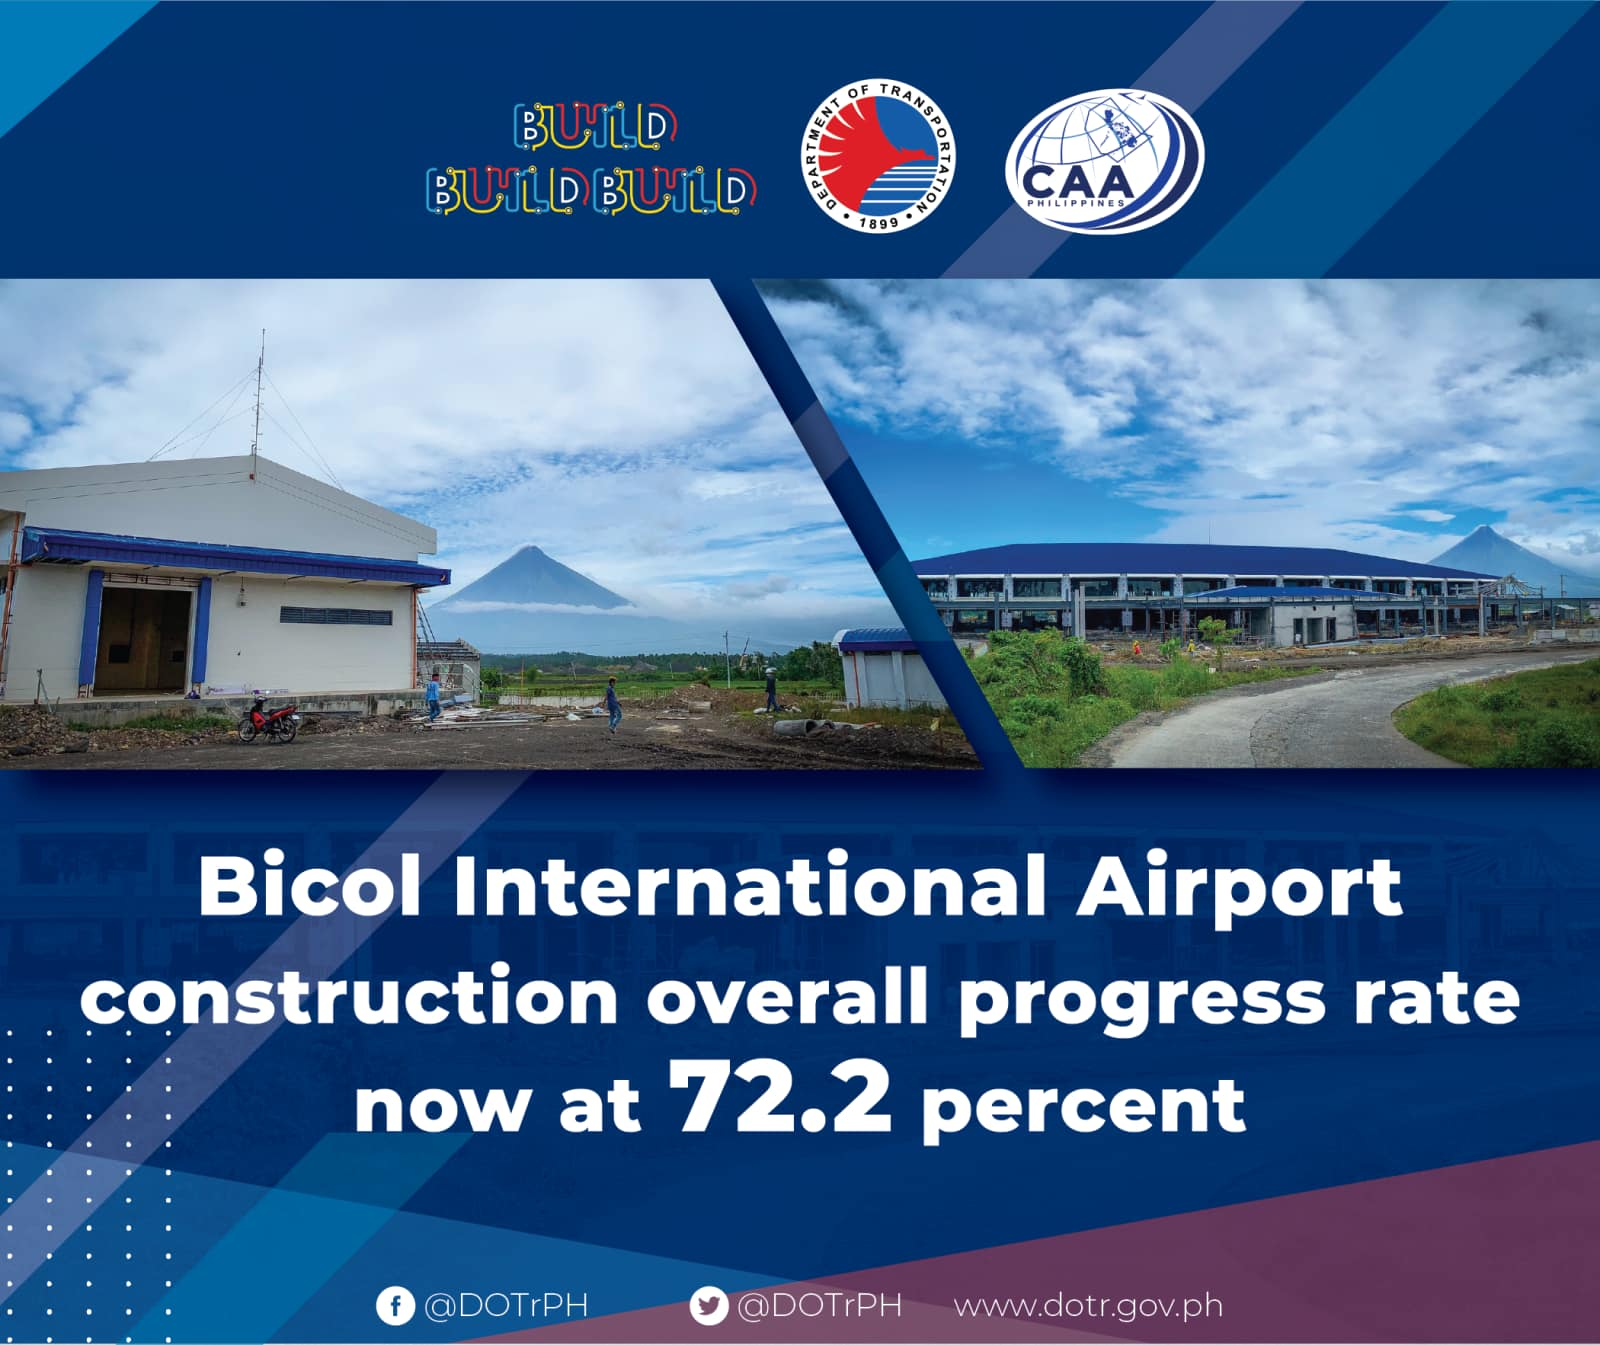 BICOL INTERNATIONAL AIRPORT CONSTRUCTION OVERALL PROGRESS RATE NOW AT 72.2 PERCENT